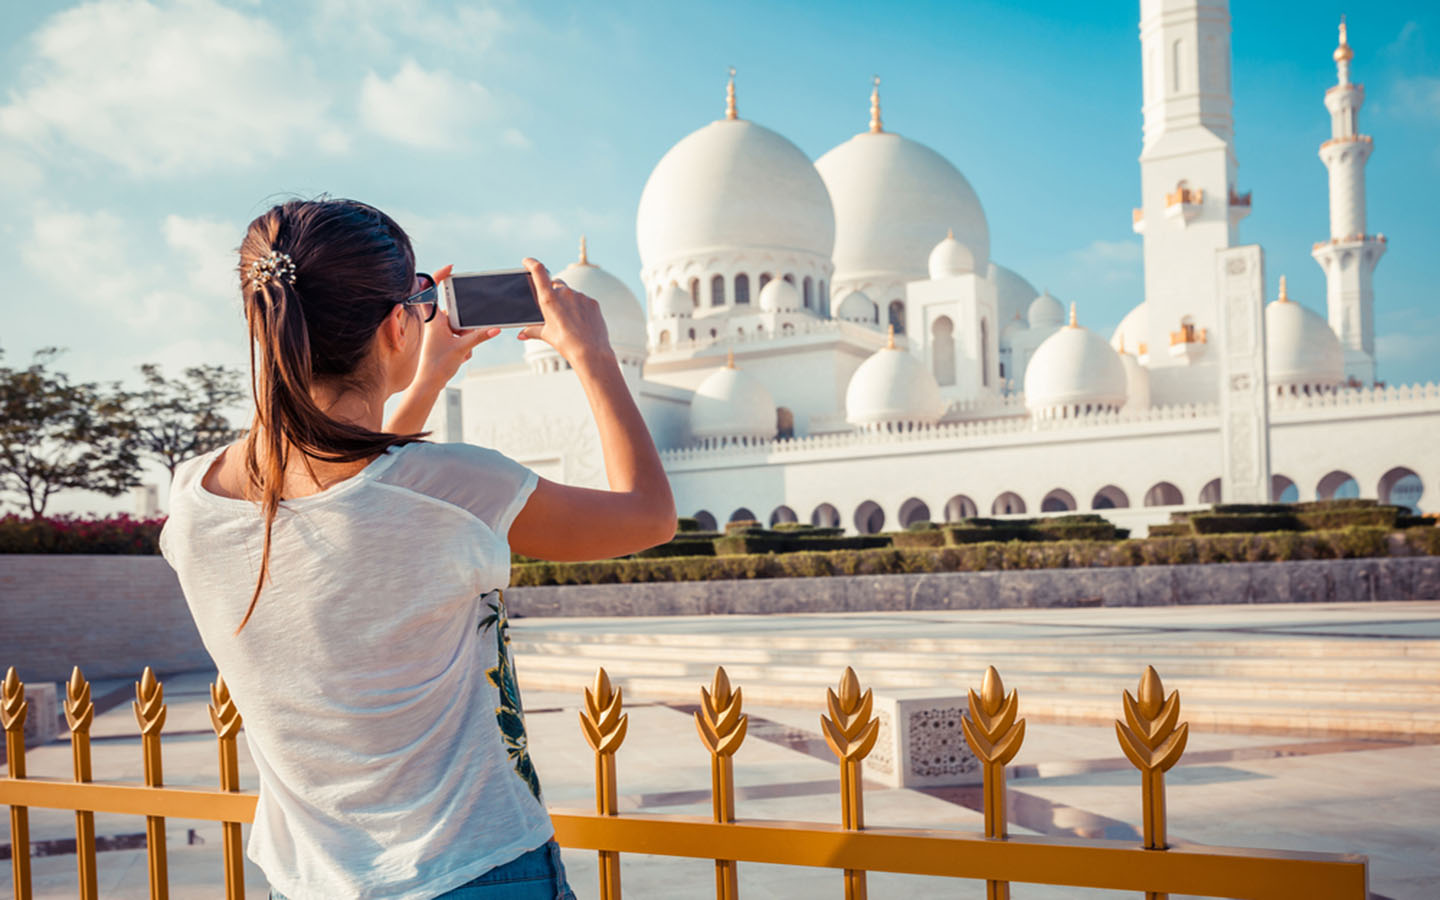 A tourist taking a picture in Sheikh Zayed Grand Mosque